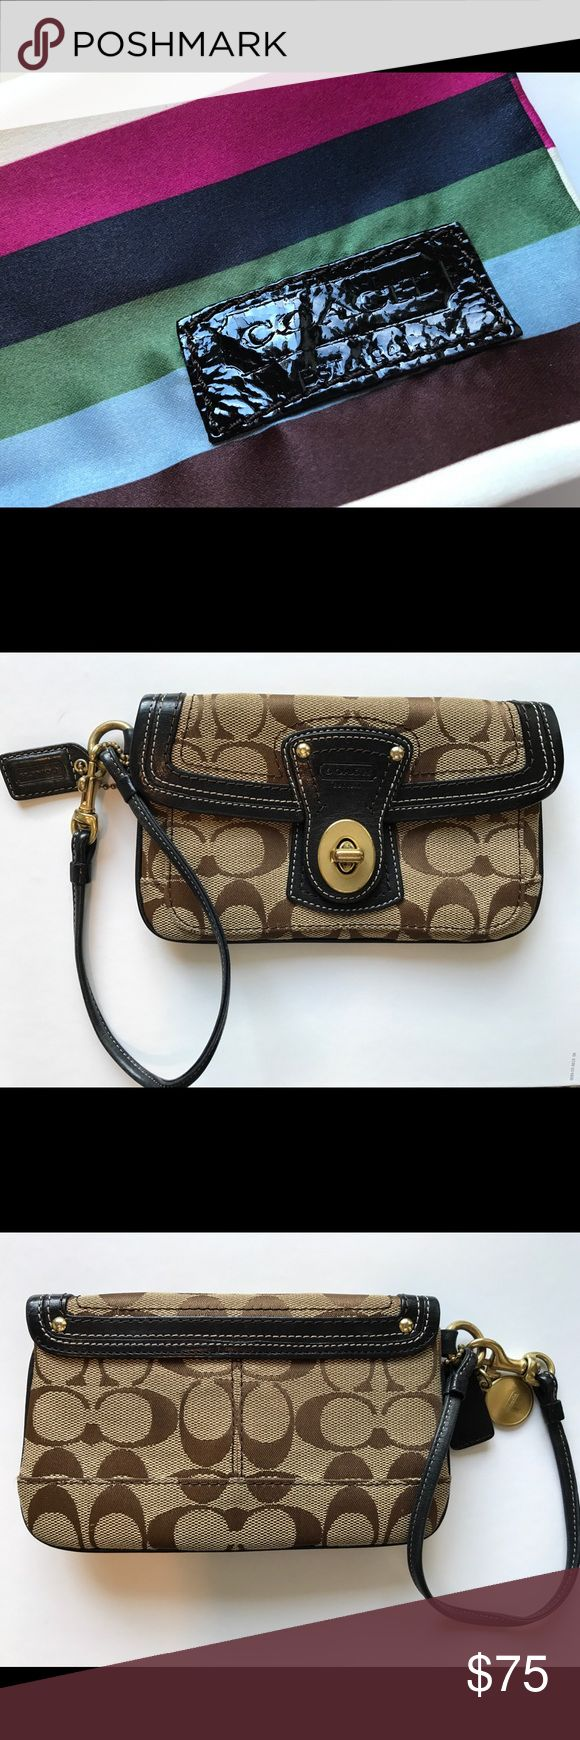 Coach Legacy 25th RARE wristlet RARE LIMITED EDITION Coach Legacy Stripe wristlet. Excellent condition with minor signs of wear on interior fabric lining. Comes with Coach Legacy Stripe duster/bag. Coach Bags Clutches & Wristlets